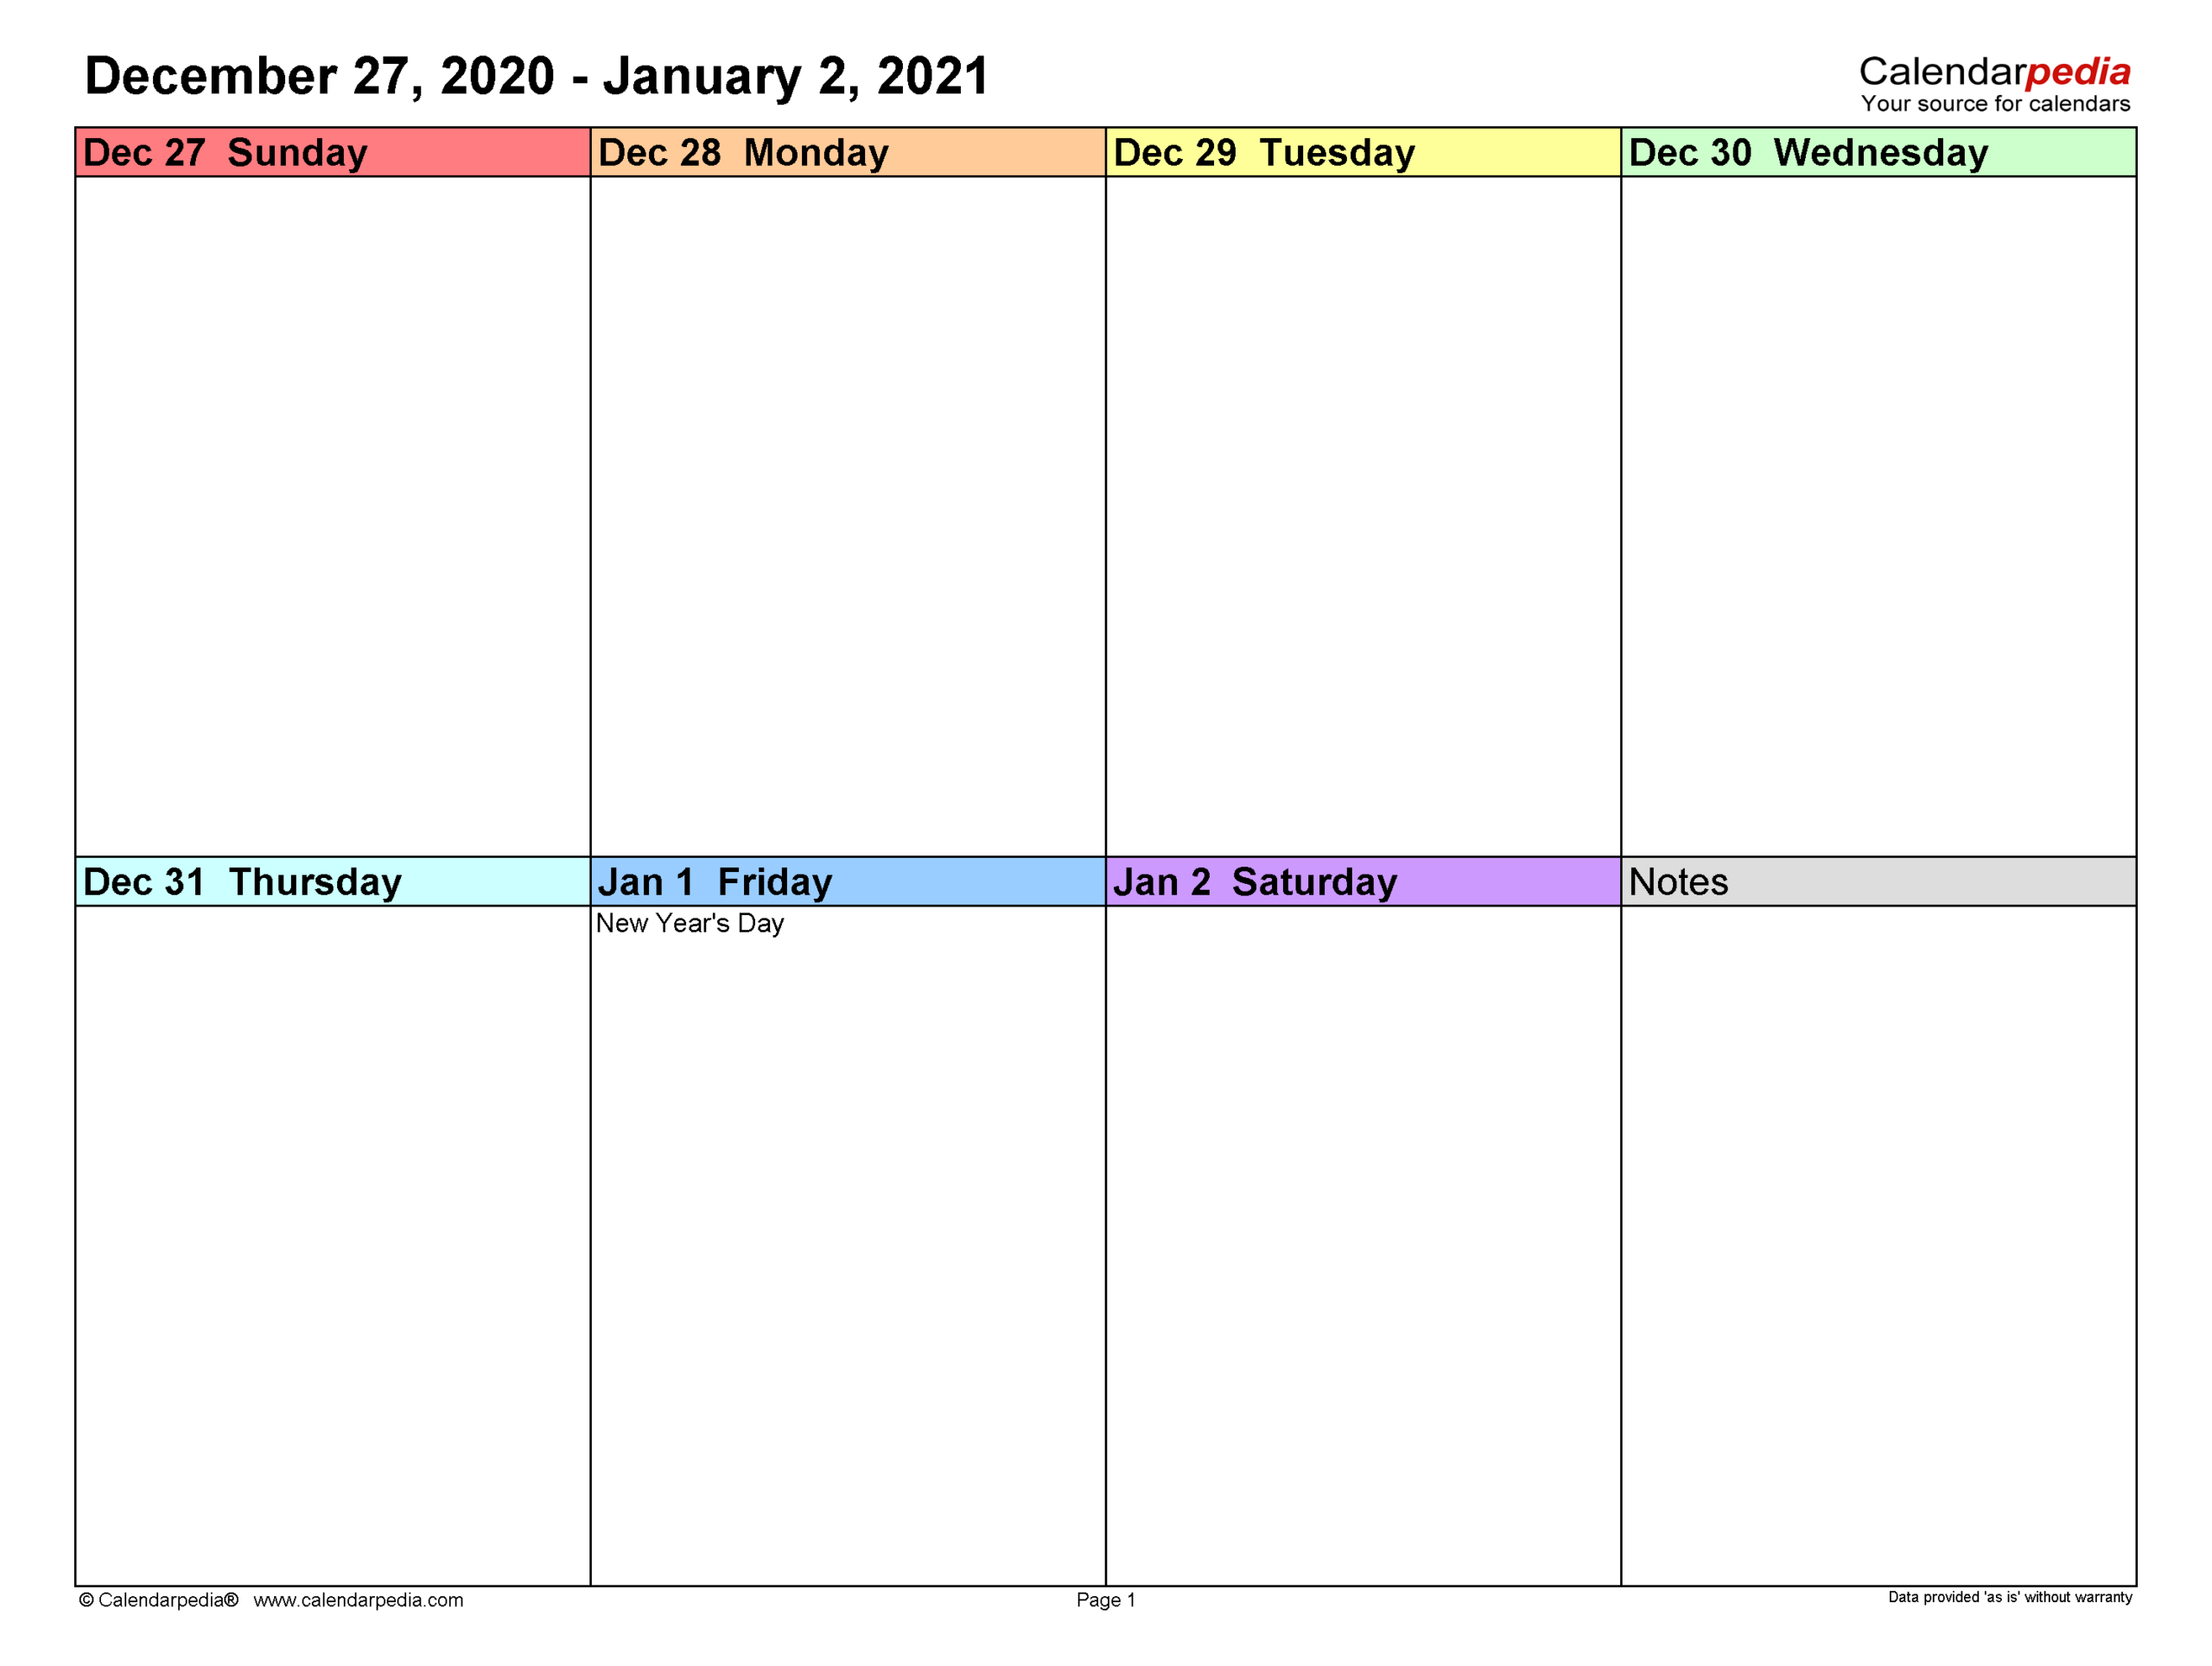 Weekly Calendars 2021 For Pdf - 12 Free Printable Templates with regard to Calendar November December January Space To Write At The Side